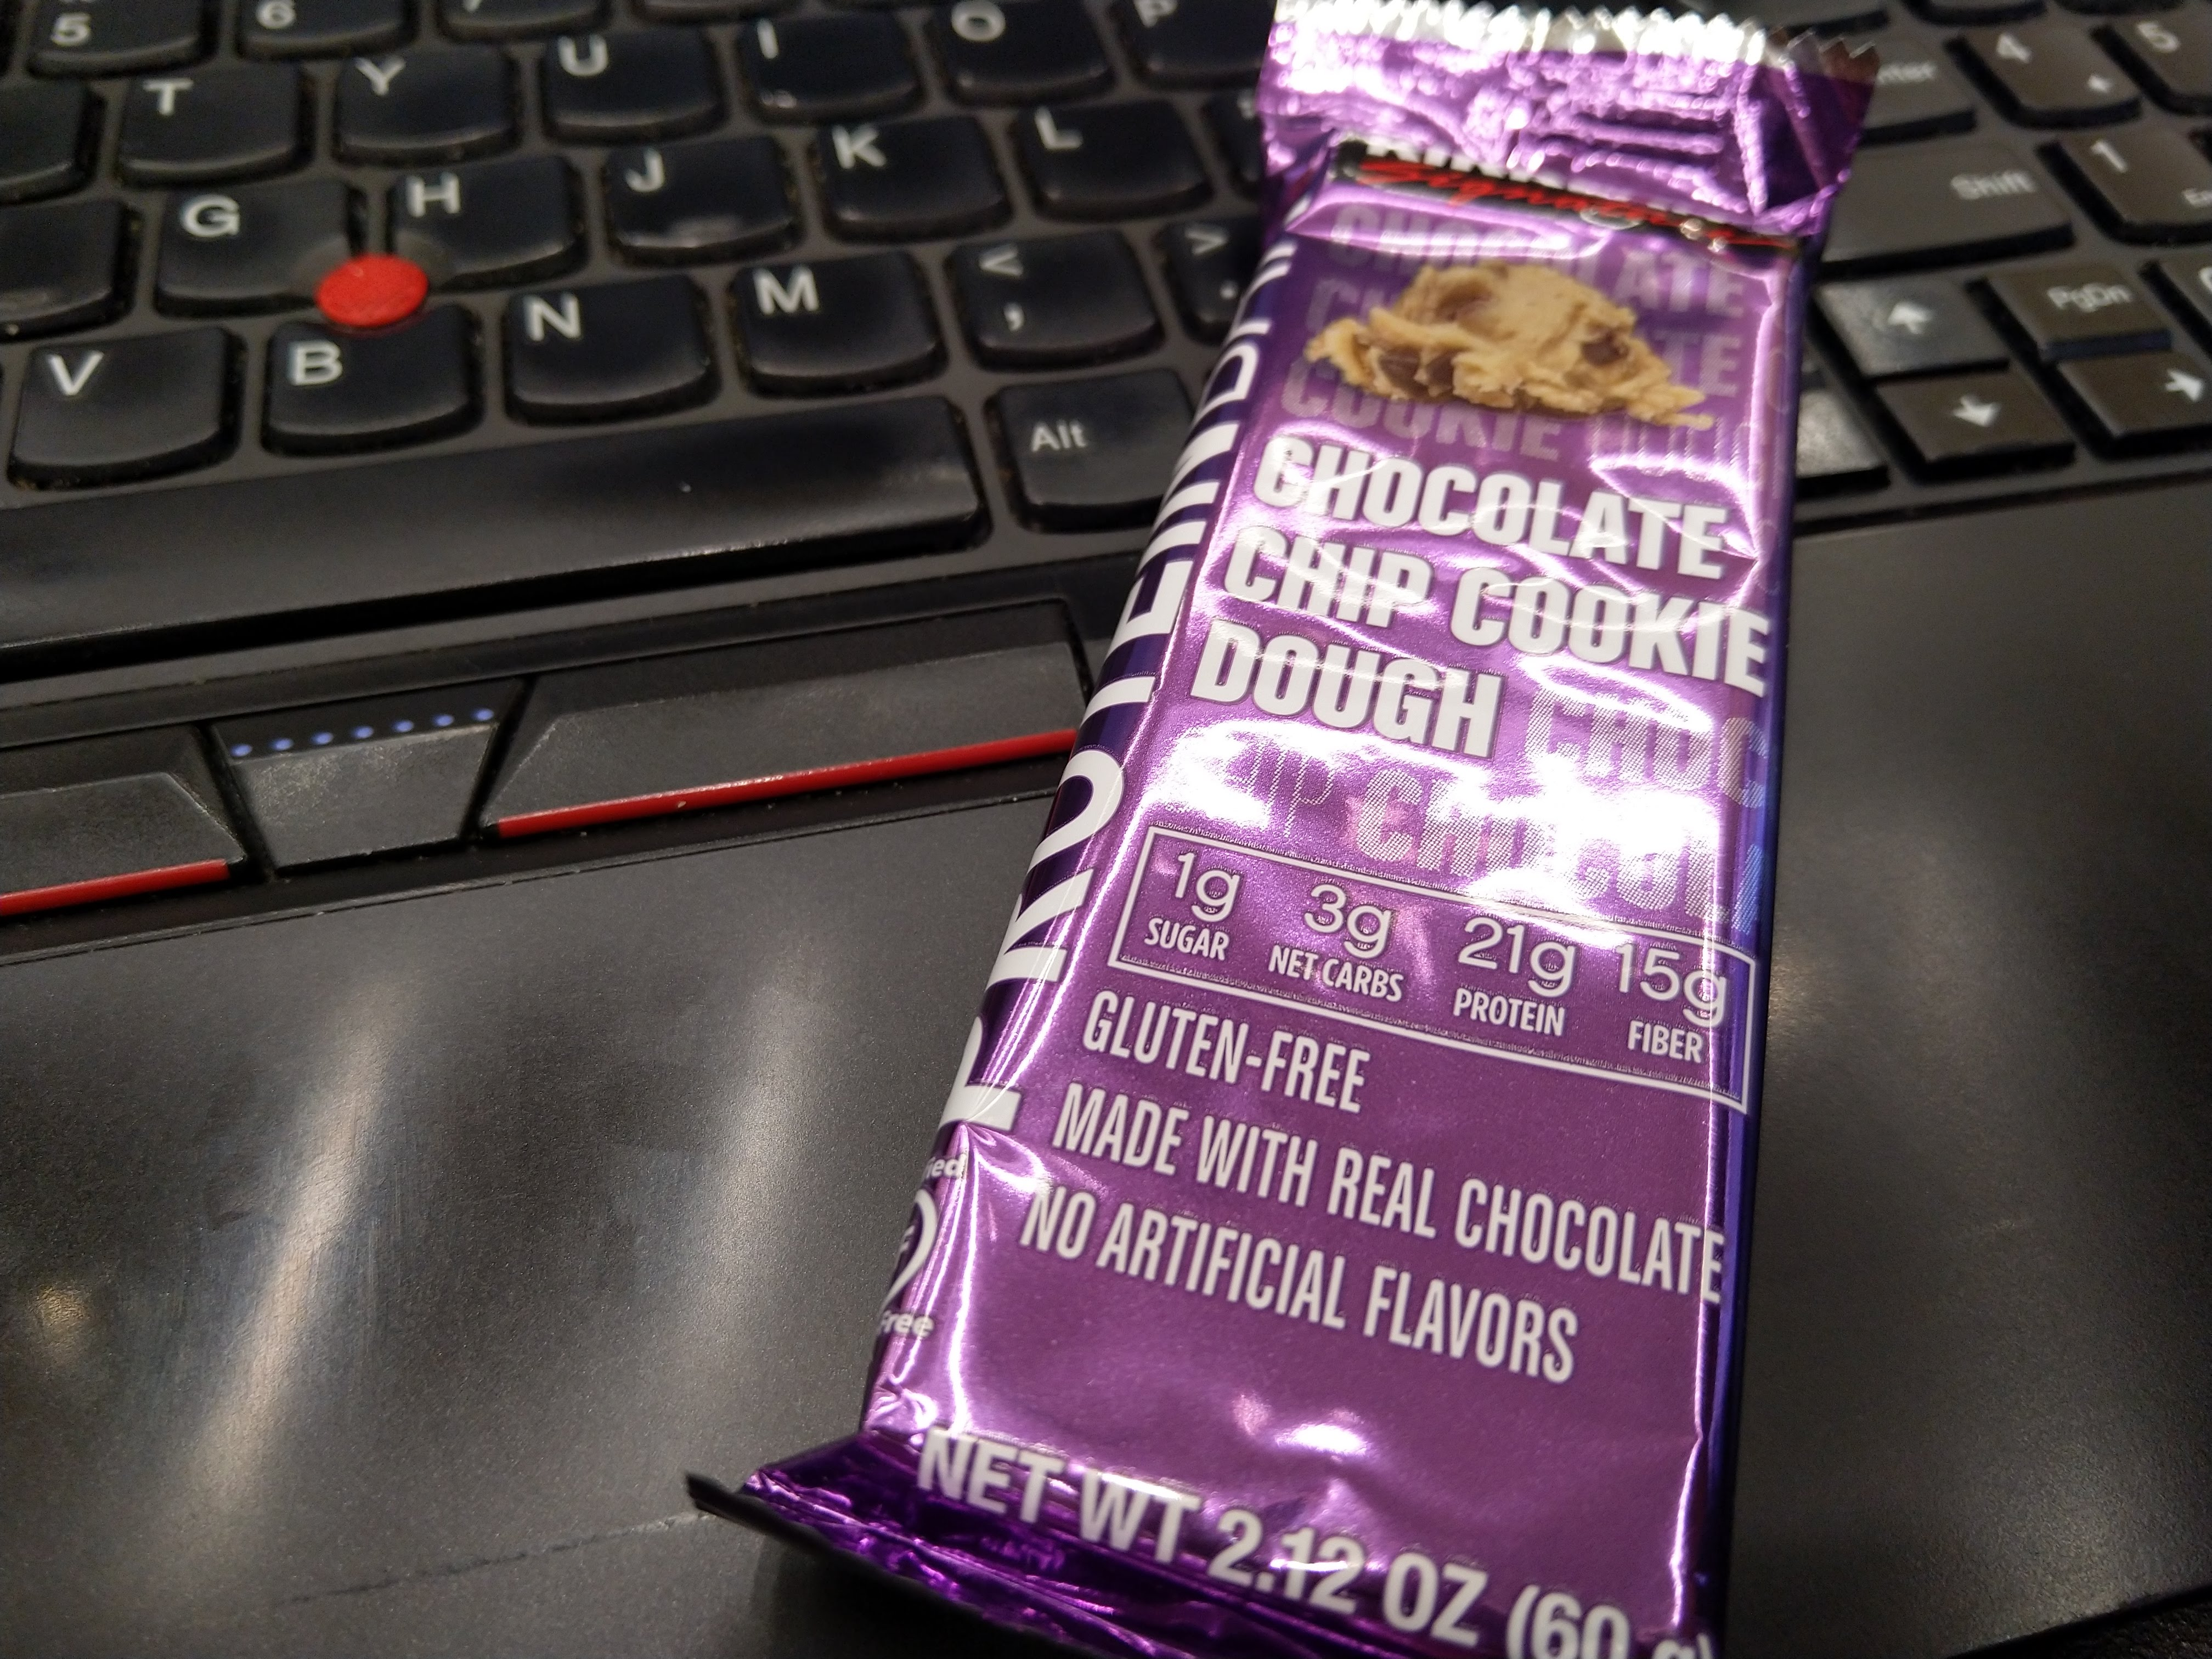 a chocolate chip cookie dough protein bar